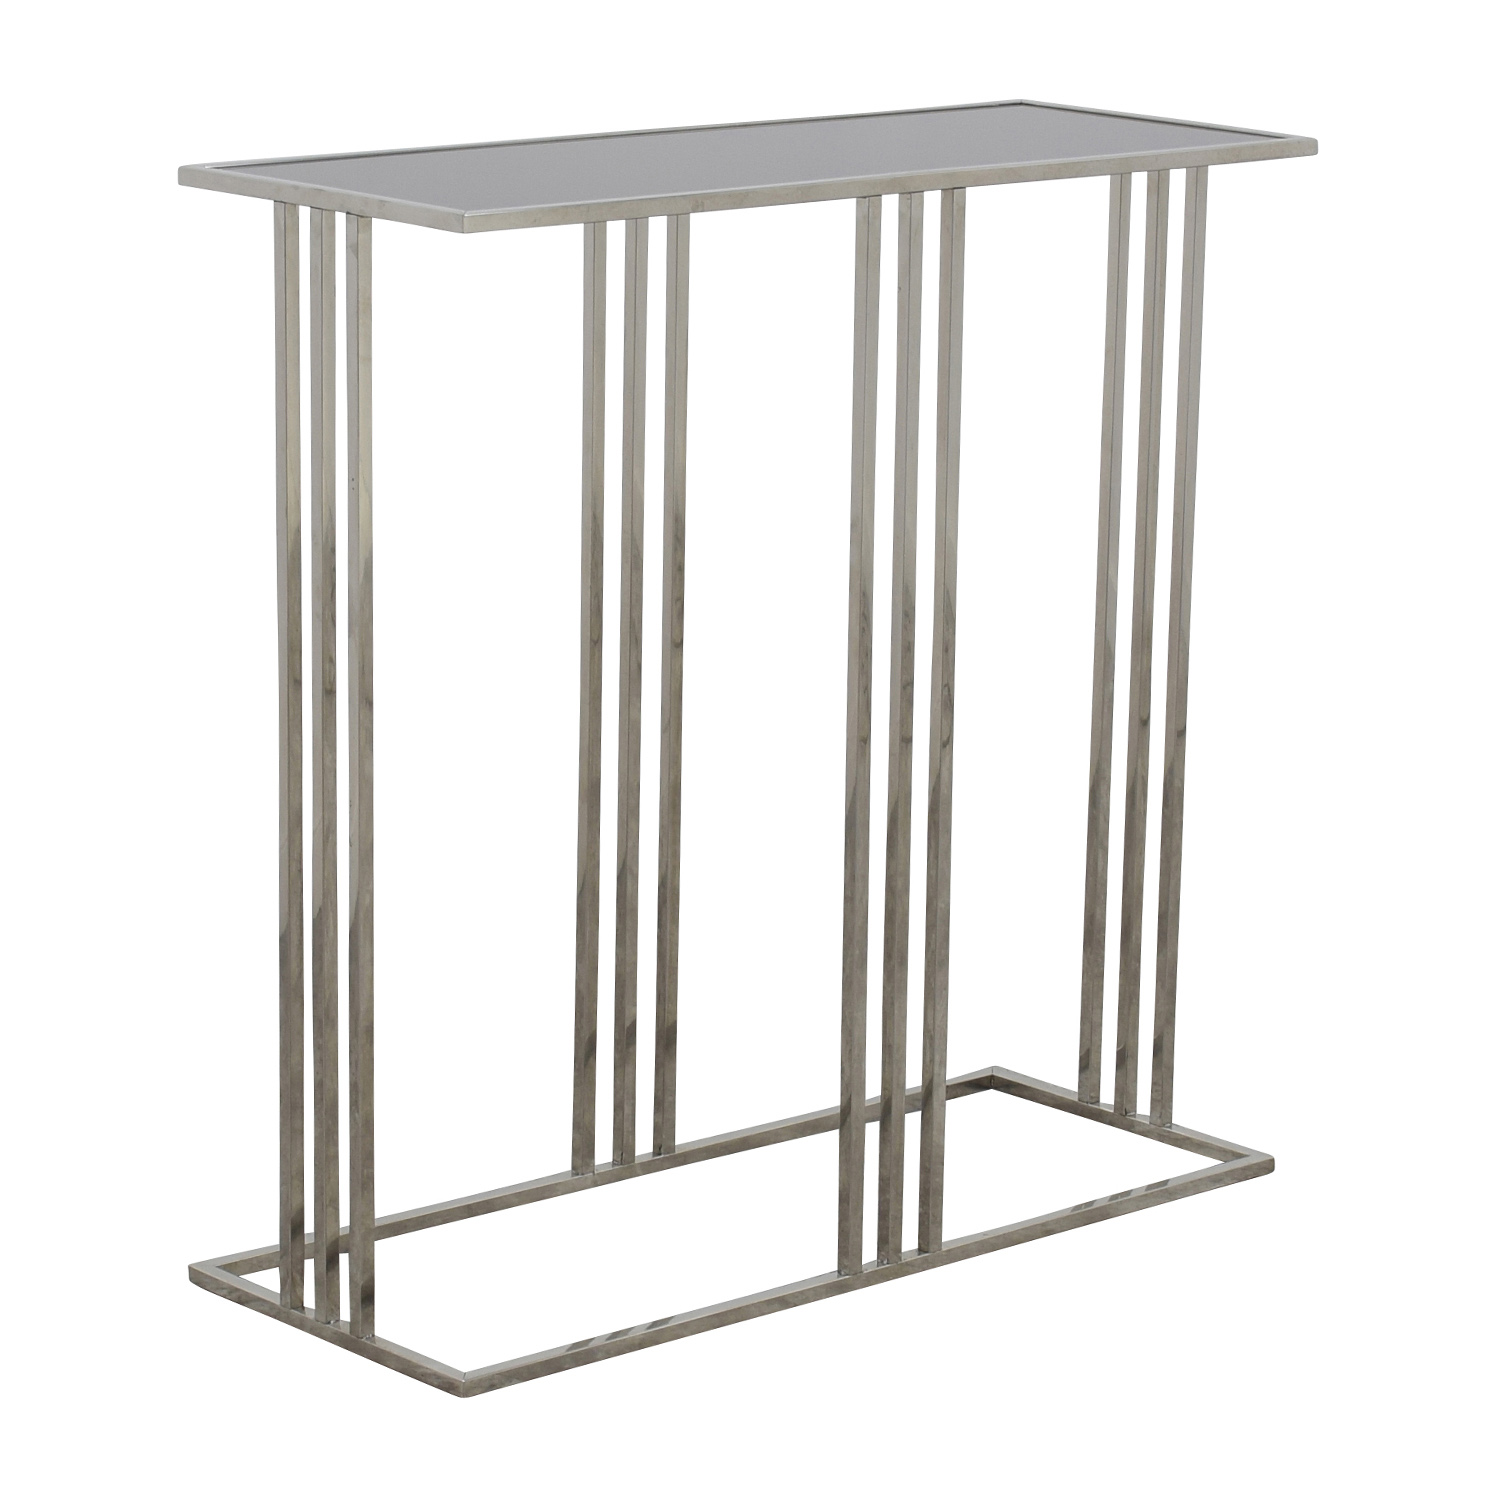 Marshalls Homegoods Marshalls Homegoods Black and Silver Console Entryway Table nj